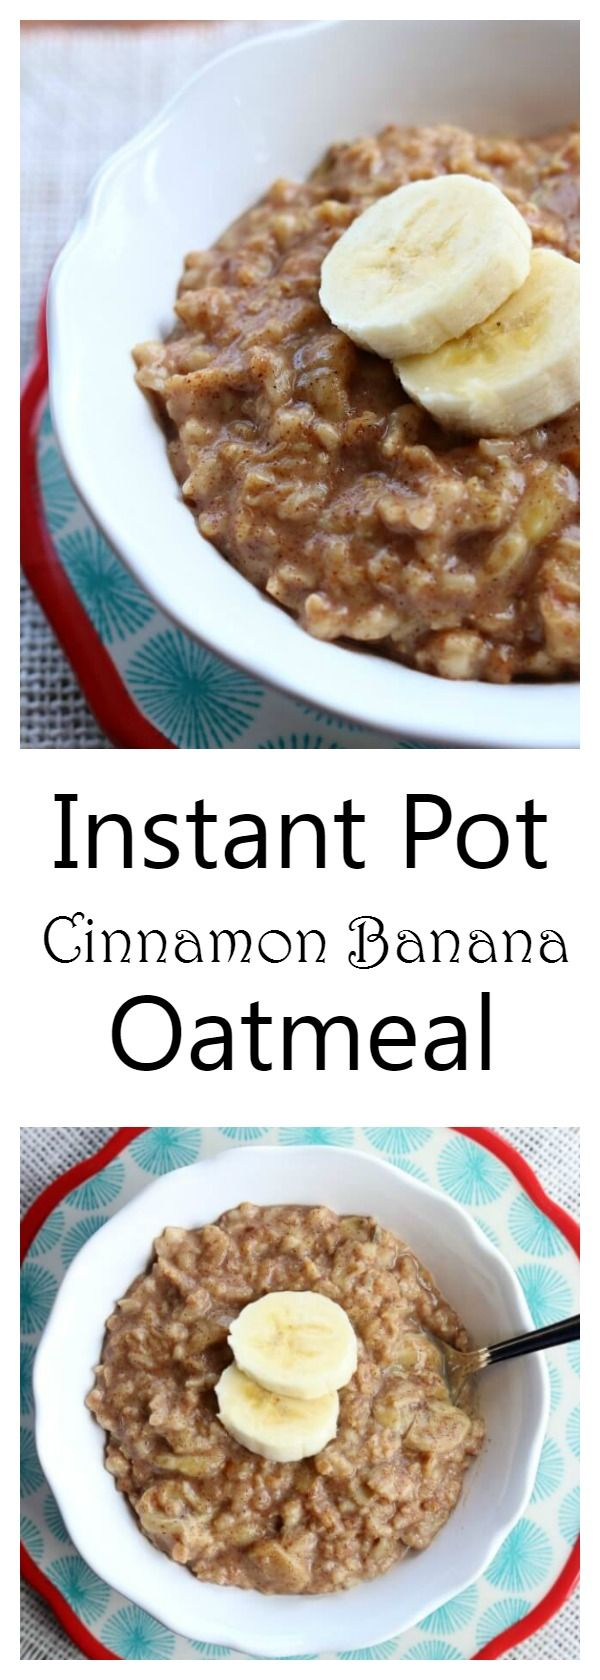 Instant Pot Cinnamon Banana Oatmeal–old fashioned oatmeal is cooked with cinnamon, brown sugar and banana in your electric pressure cooker for a hearty, delicious and quick breakfast. #instantpot